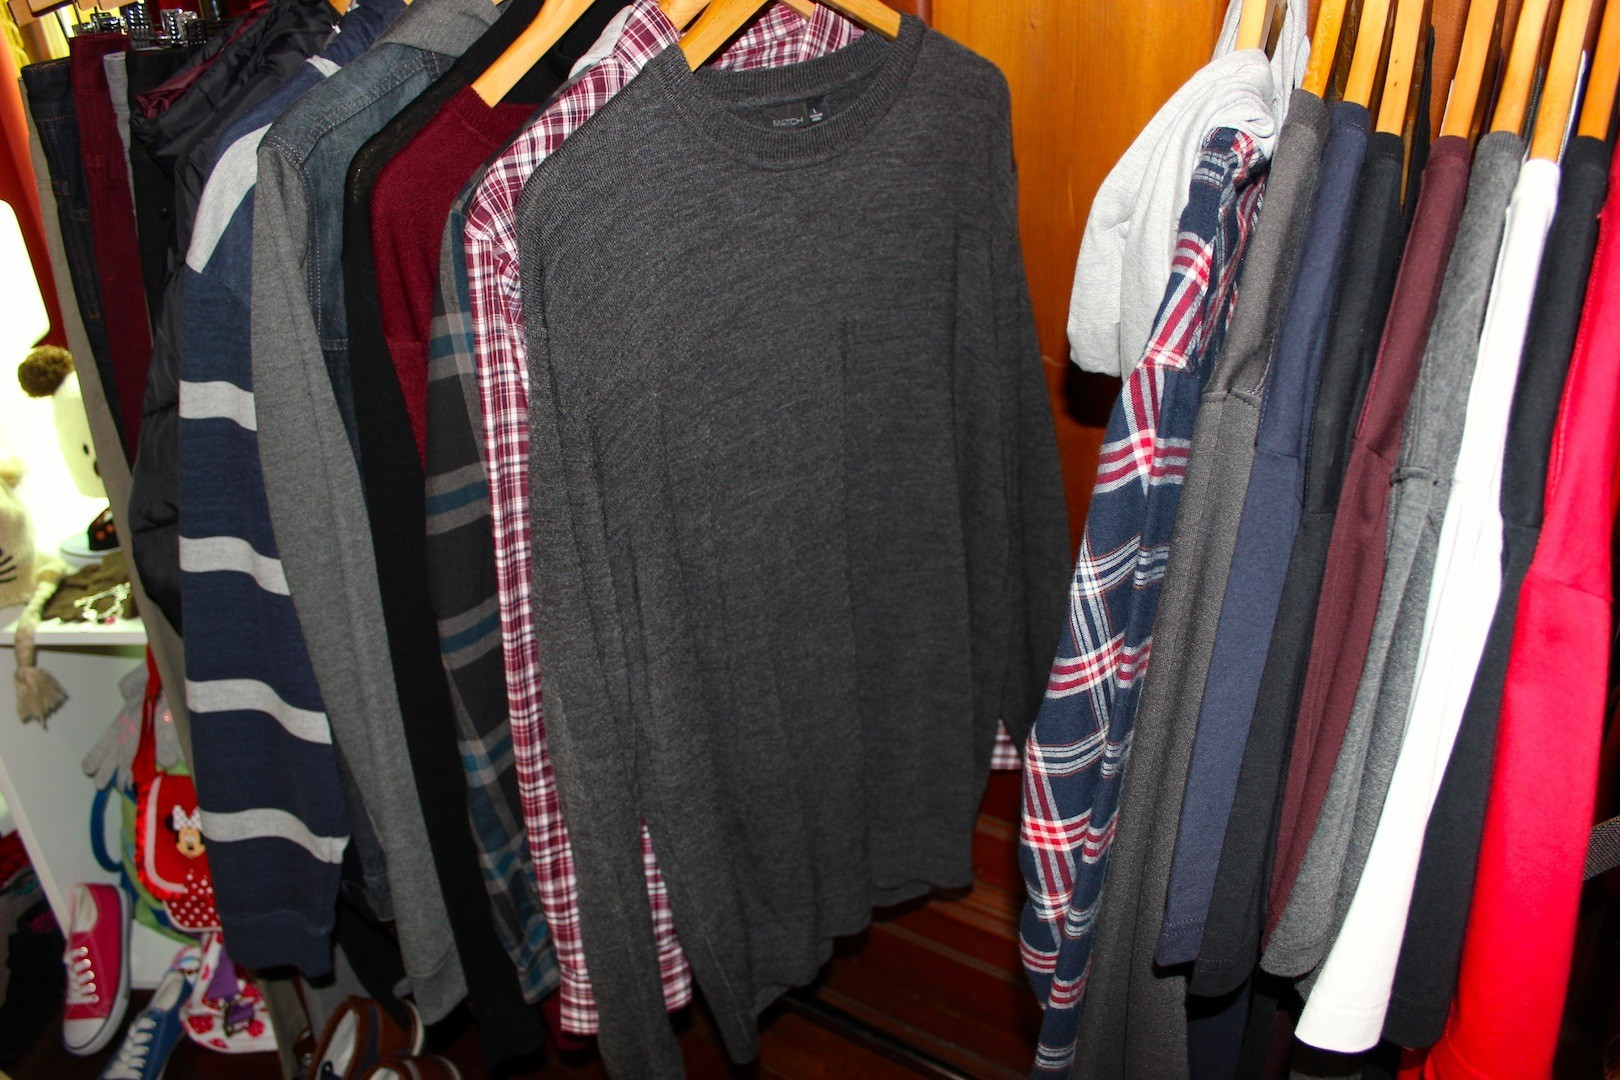 Menswear, featuring some great merino pieces